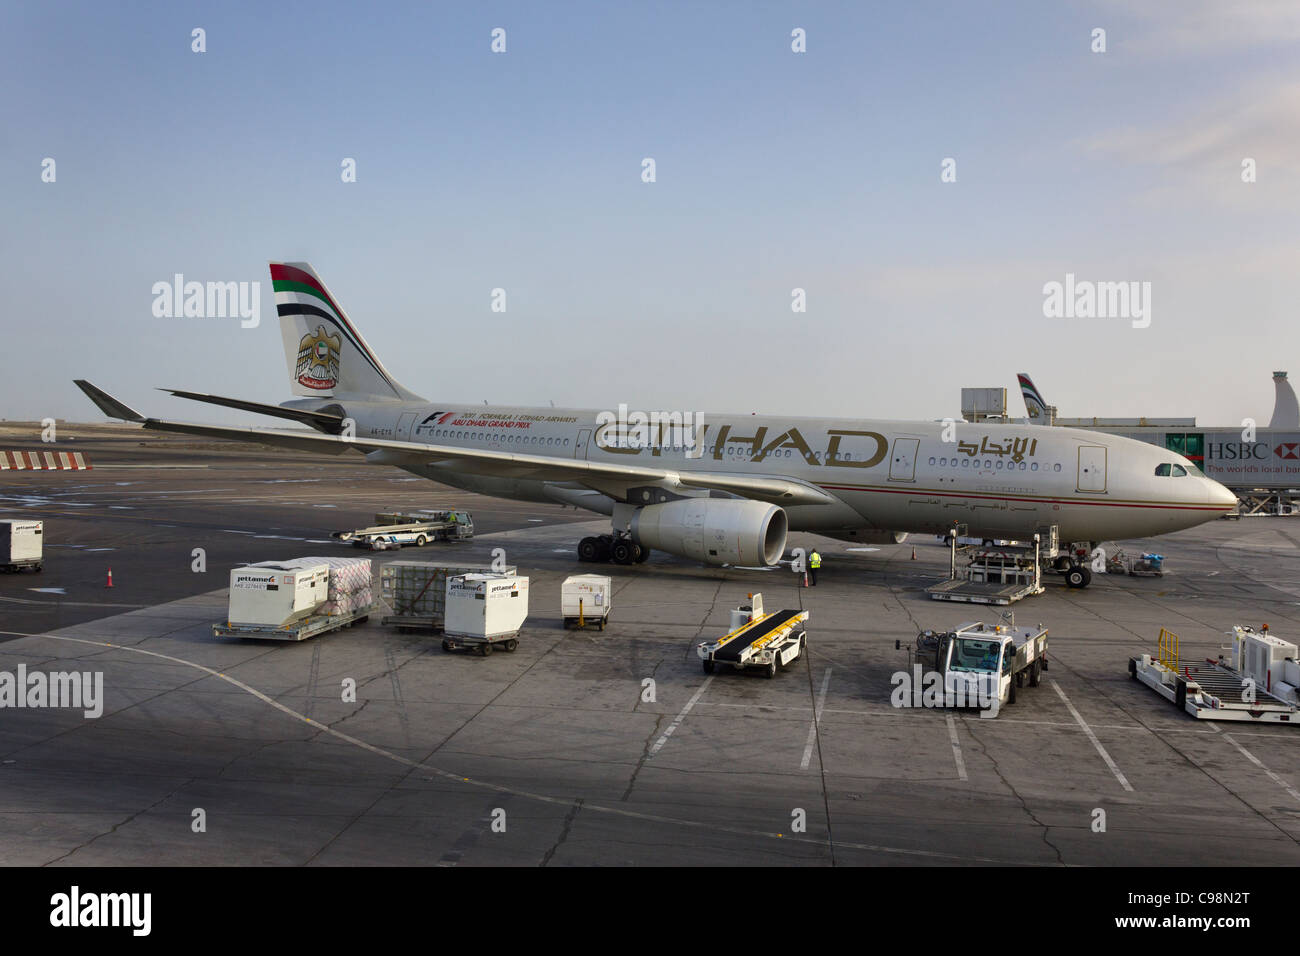 Airbus A330-200 Etihad airways plane at Terminal 1, Abu Dhabi airport, United Arab Emirates - Stock Image